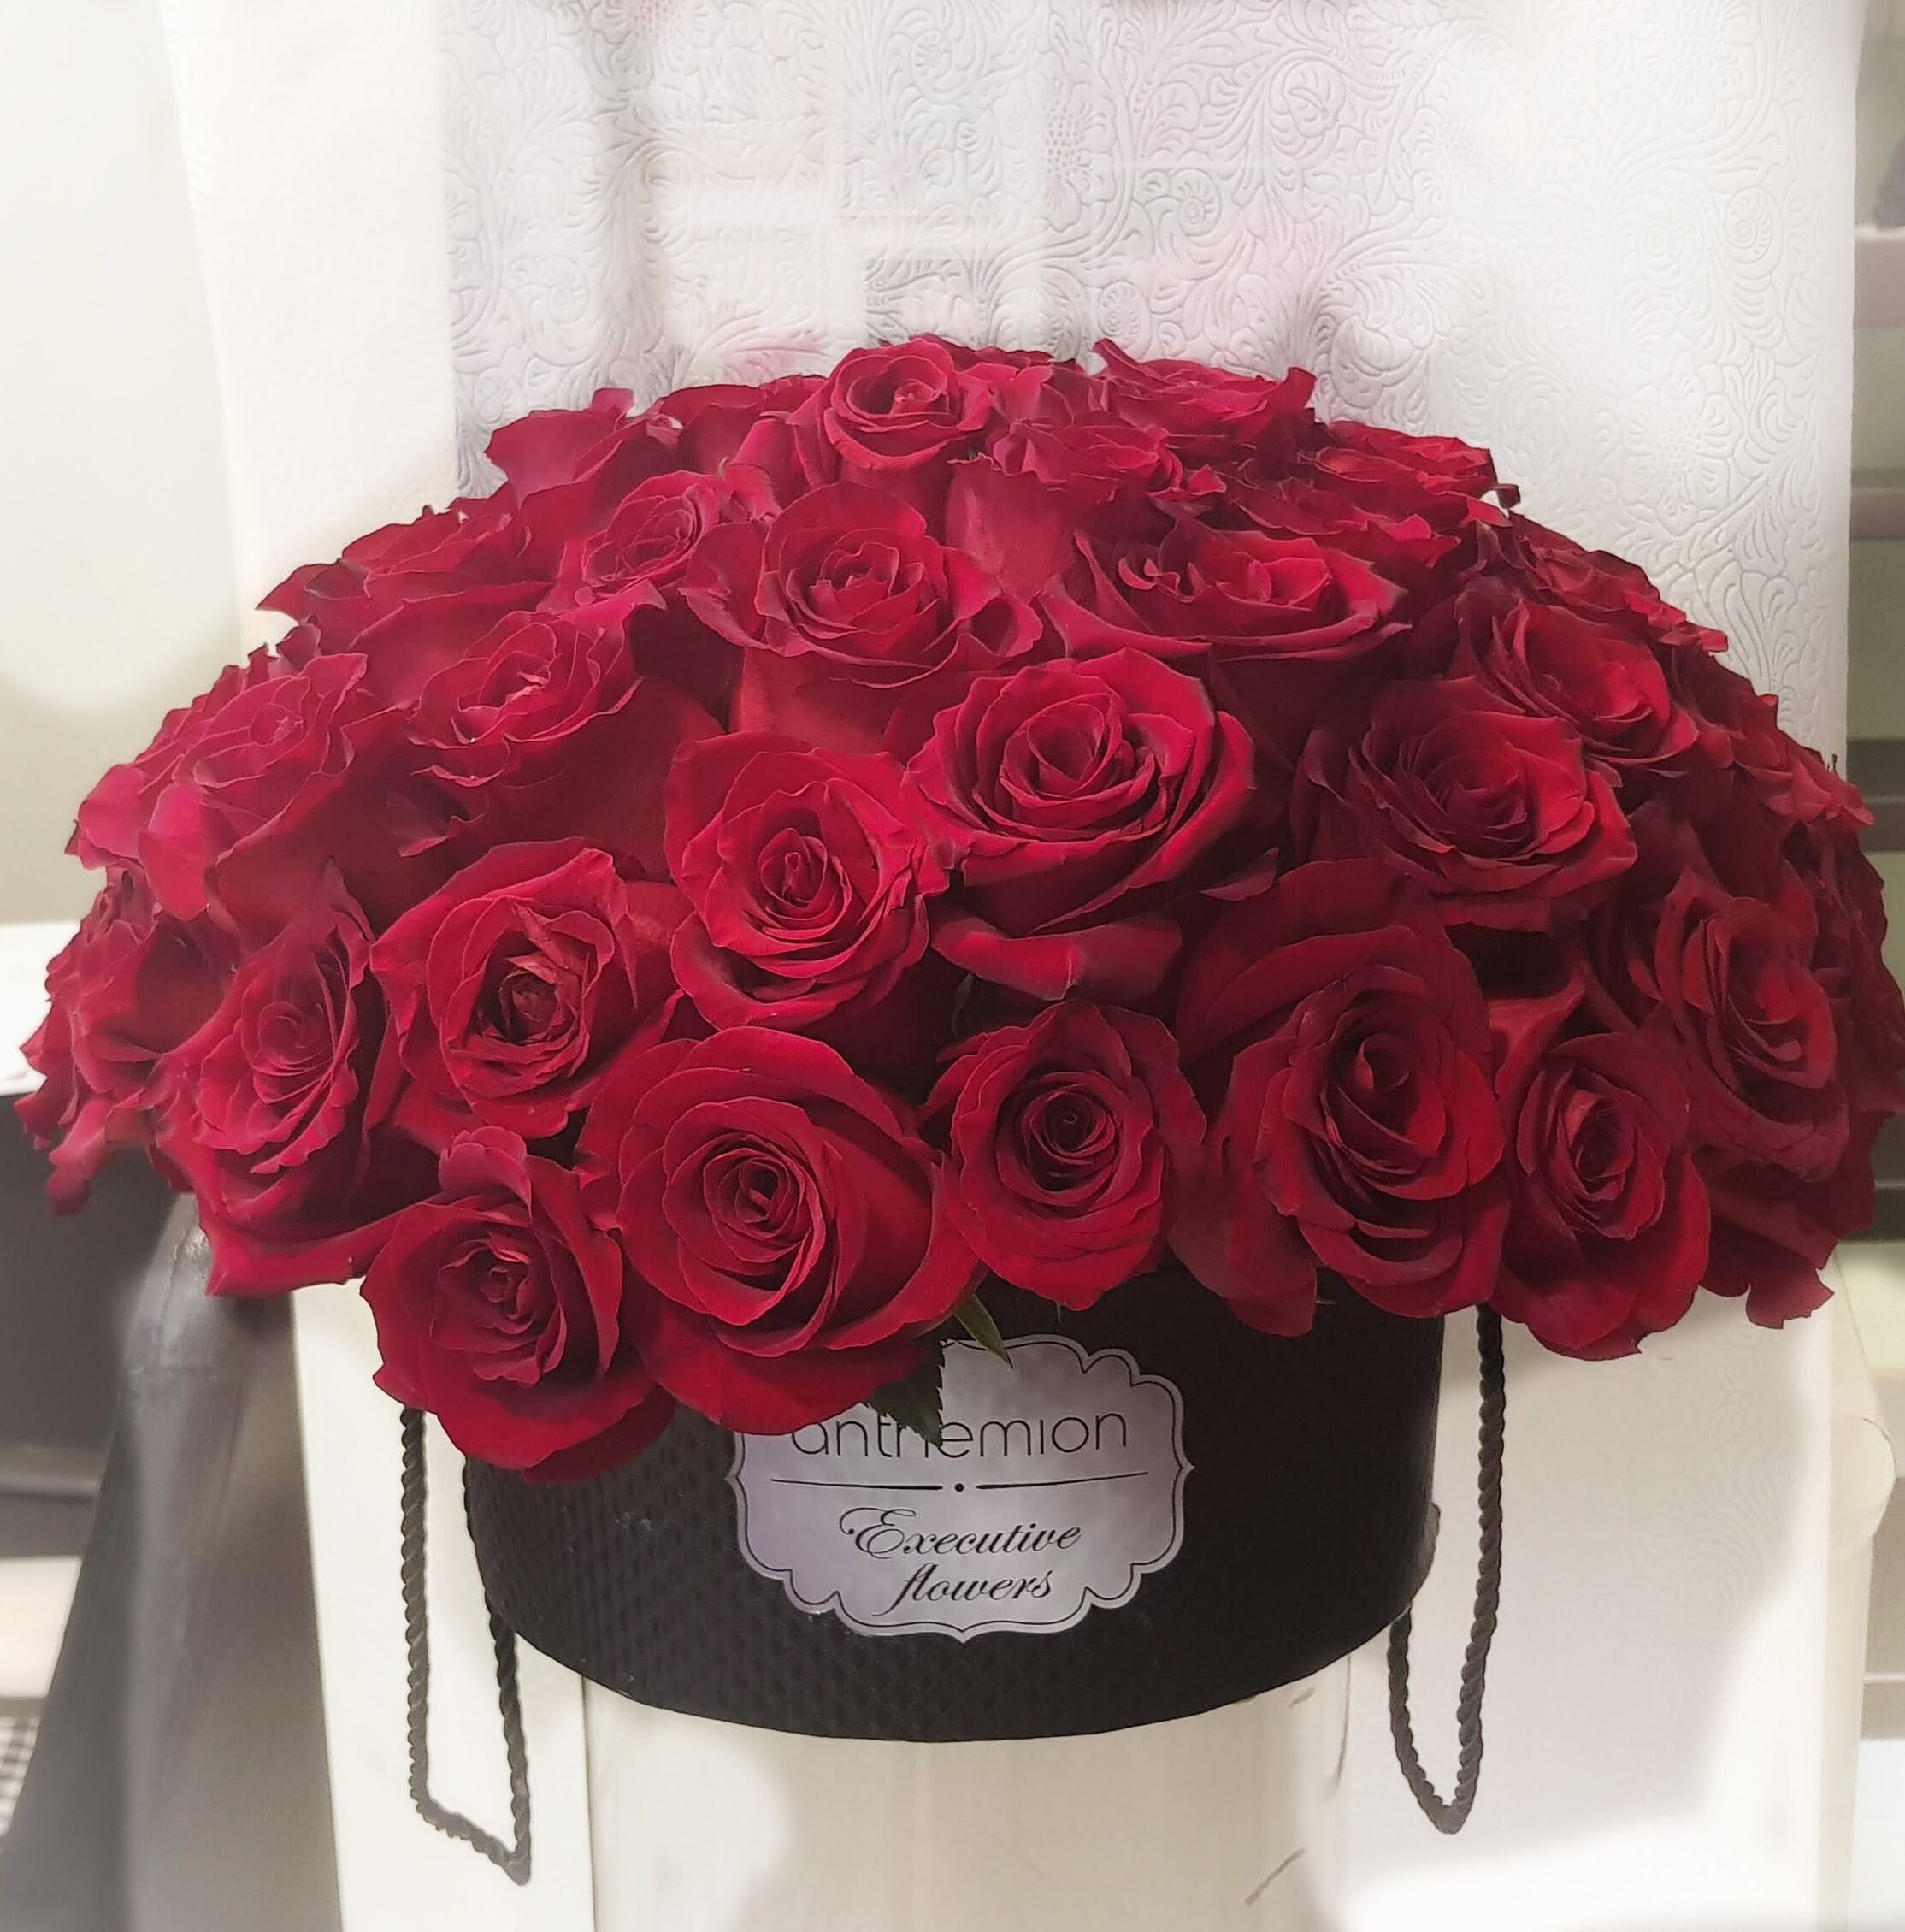 Beautiful Red Roses Arrangement In A Black Gift Box For Your Loved Ones Online Flower Shop Flowers Buy Online Flowers Send Online Flowers Online Flow